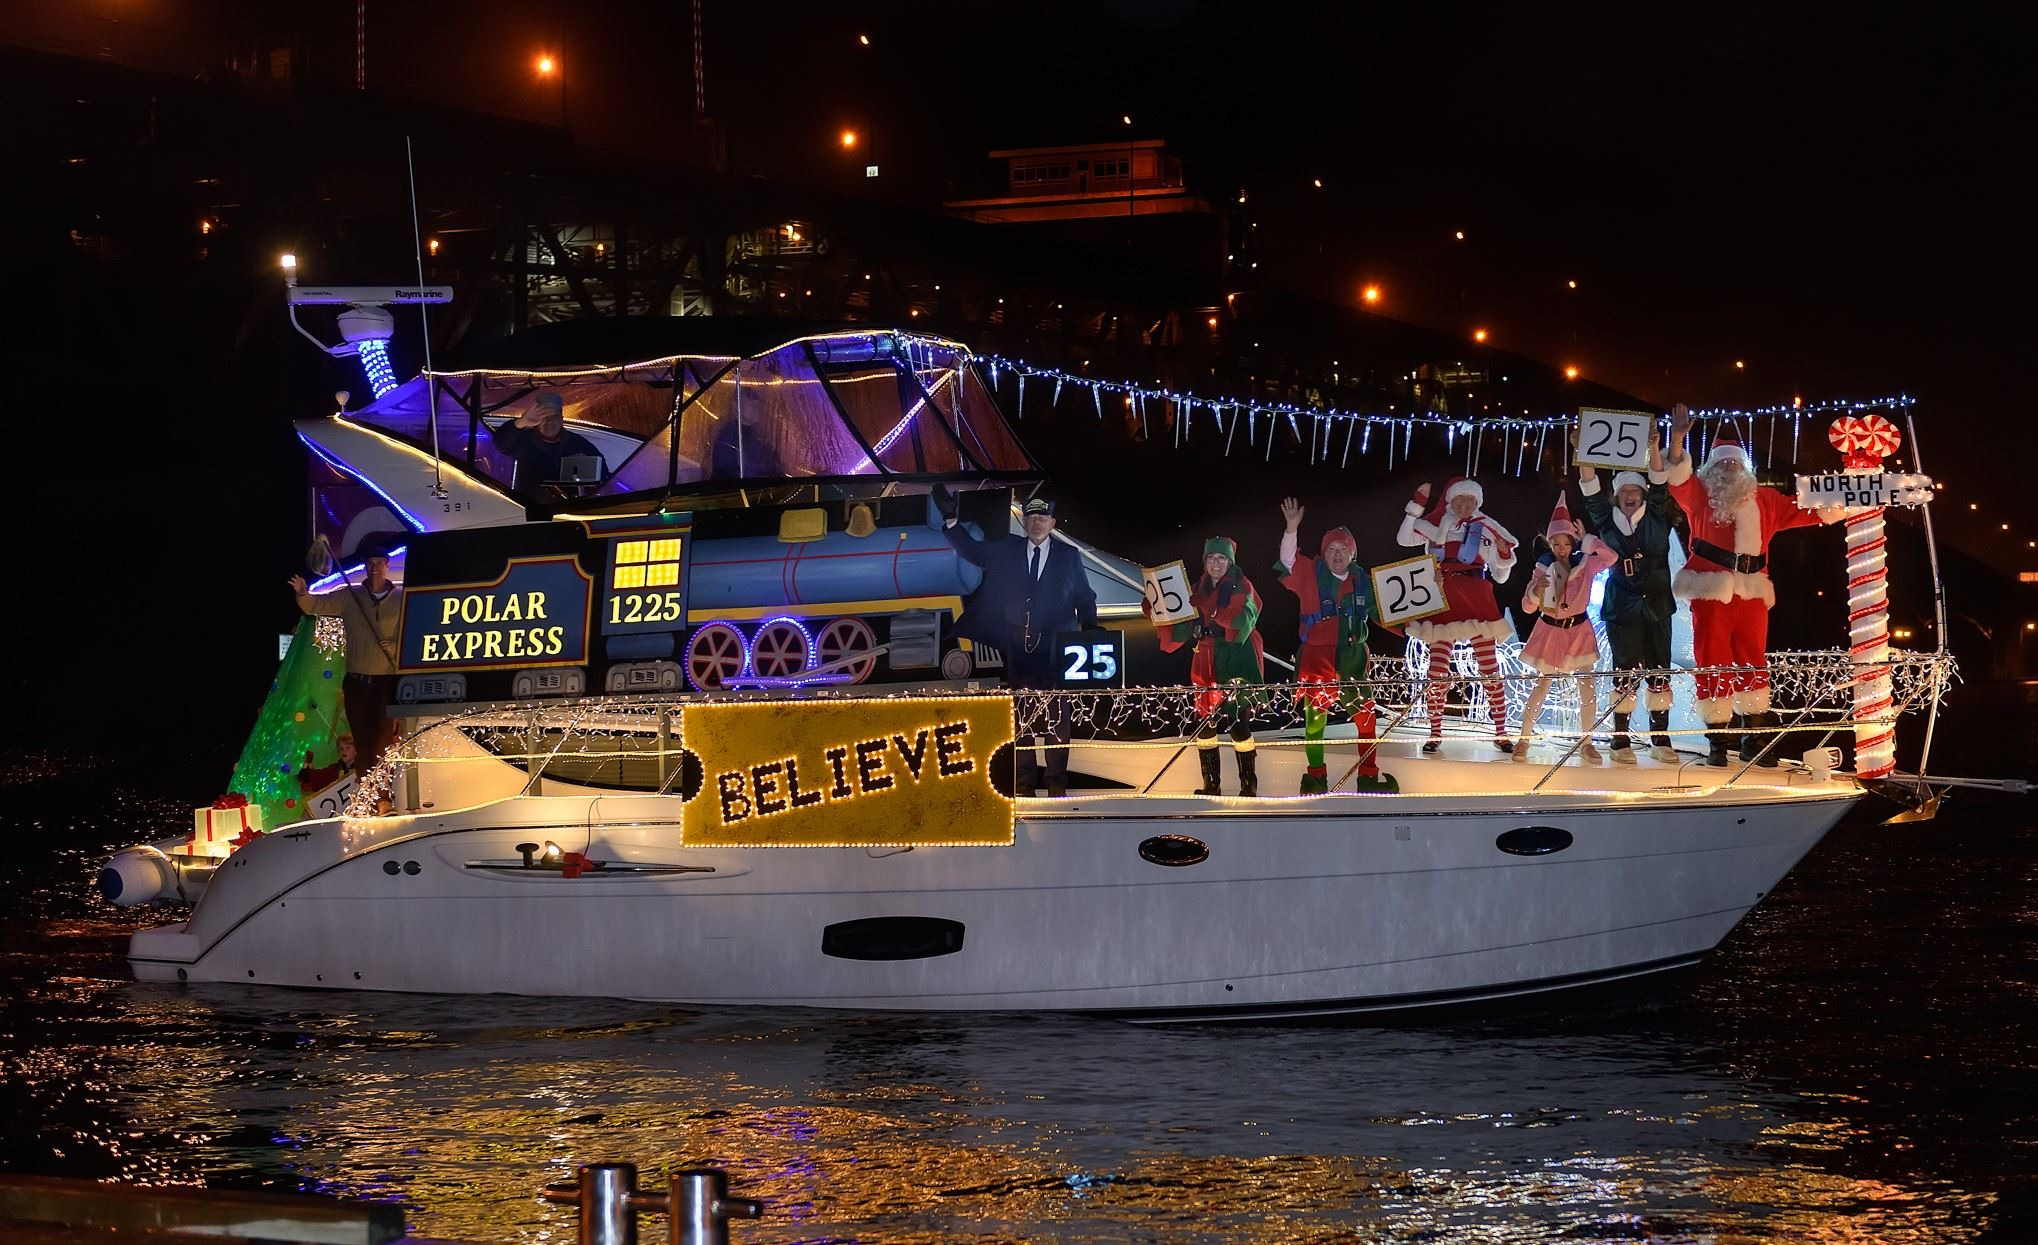 Polar Express Best in Show 2018 Lighted Boat Parade